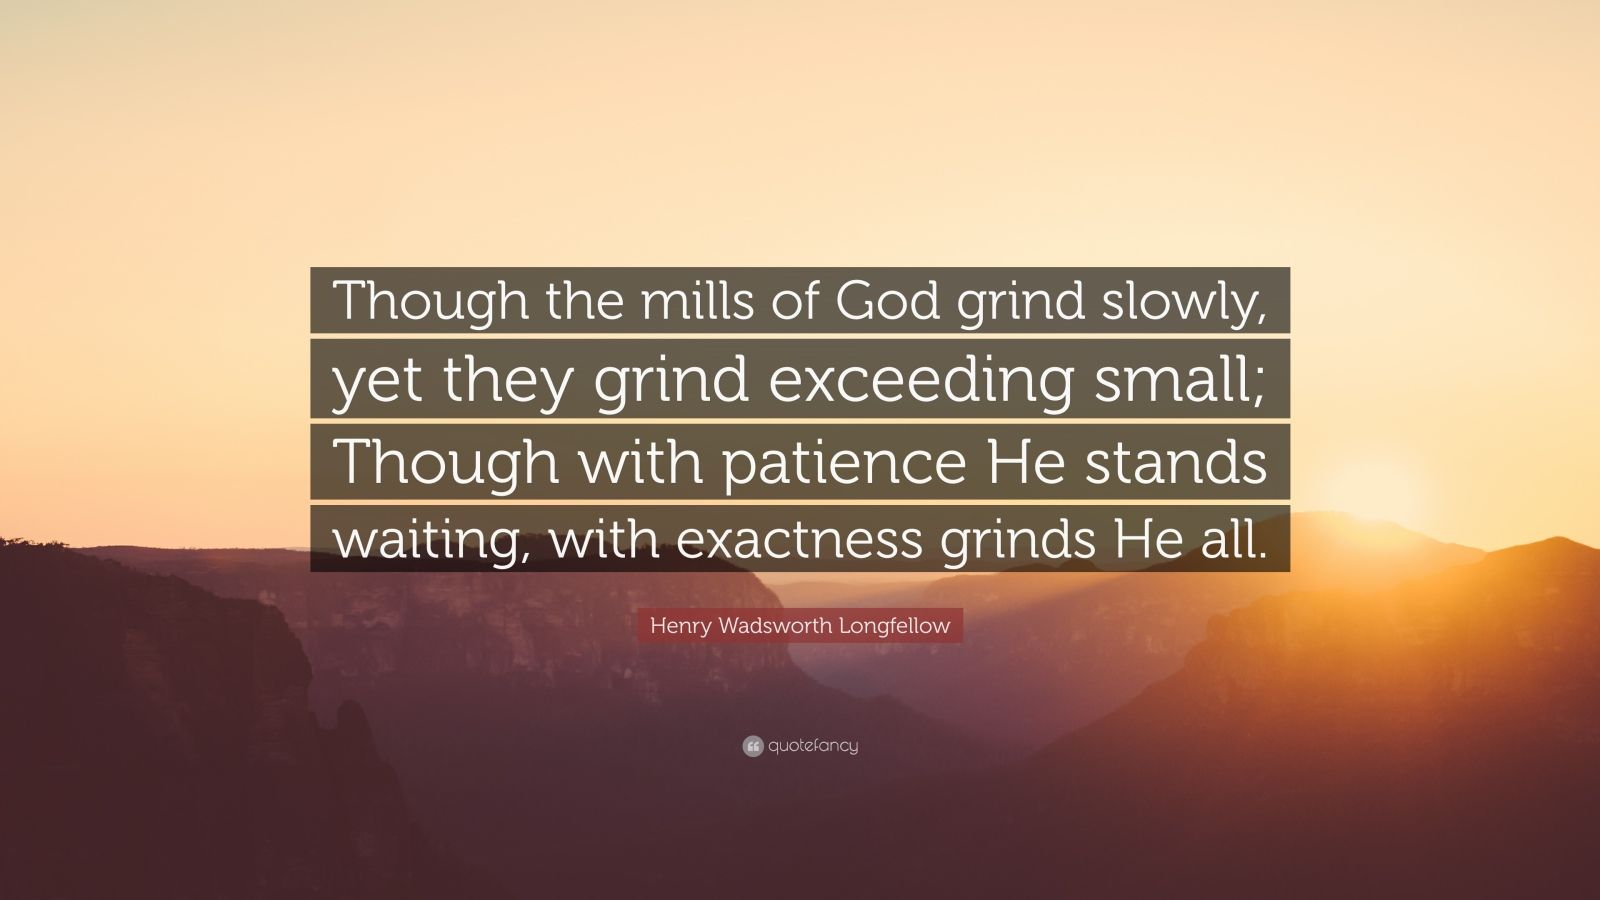 """Henry Wadsworth Longfellow Quote: """"Though the mills of God grind slowly, yet they grind exceeding small; Though with patience He stands waiting, with exactness grinds He all."""""""